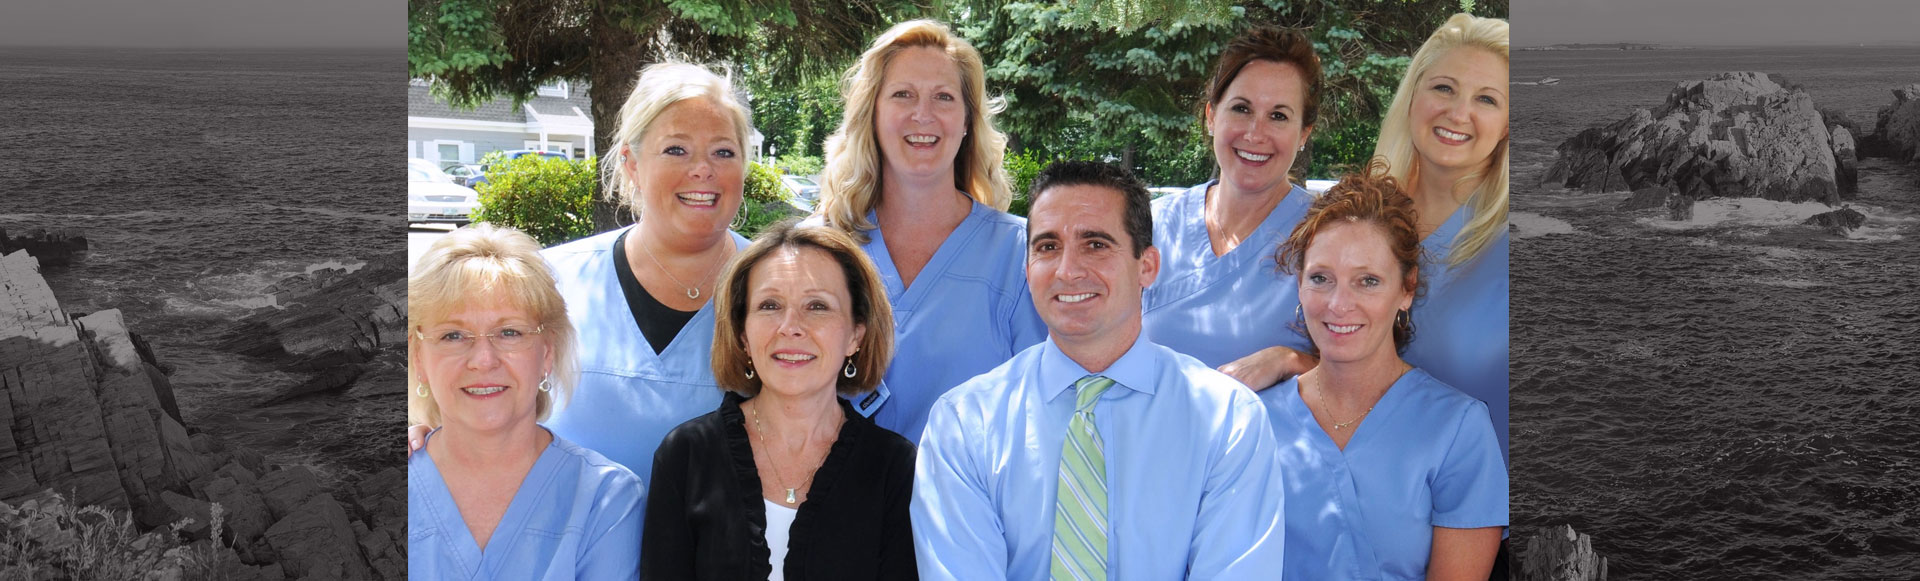 Welcome to Bedford Commons Periodontics!